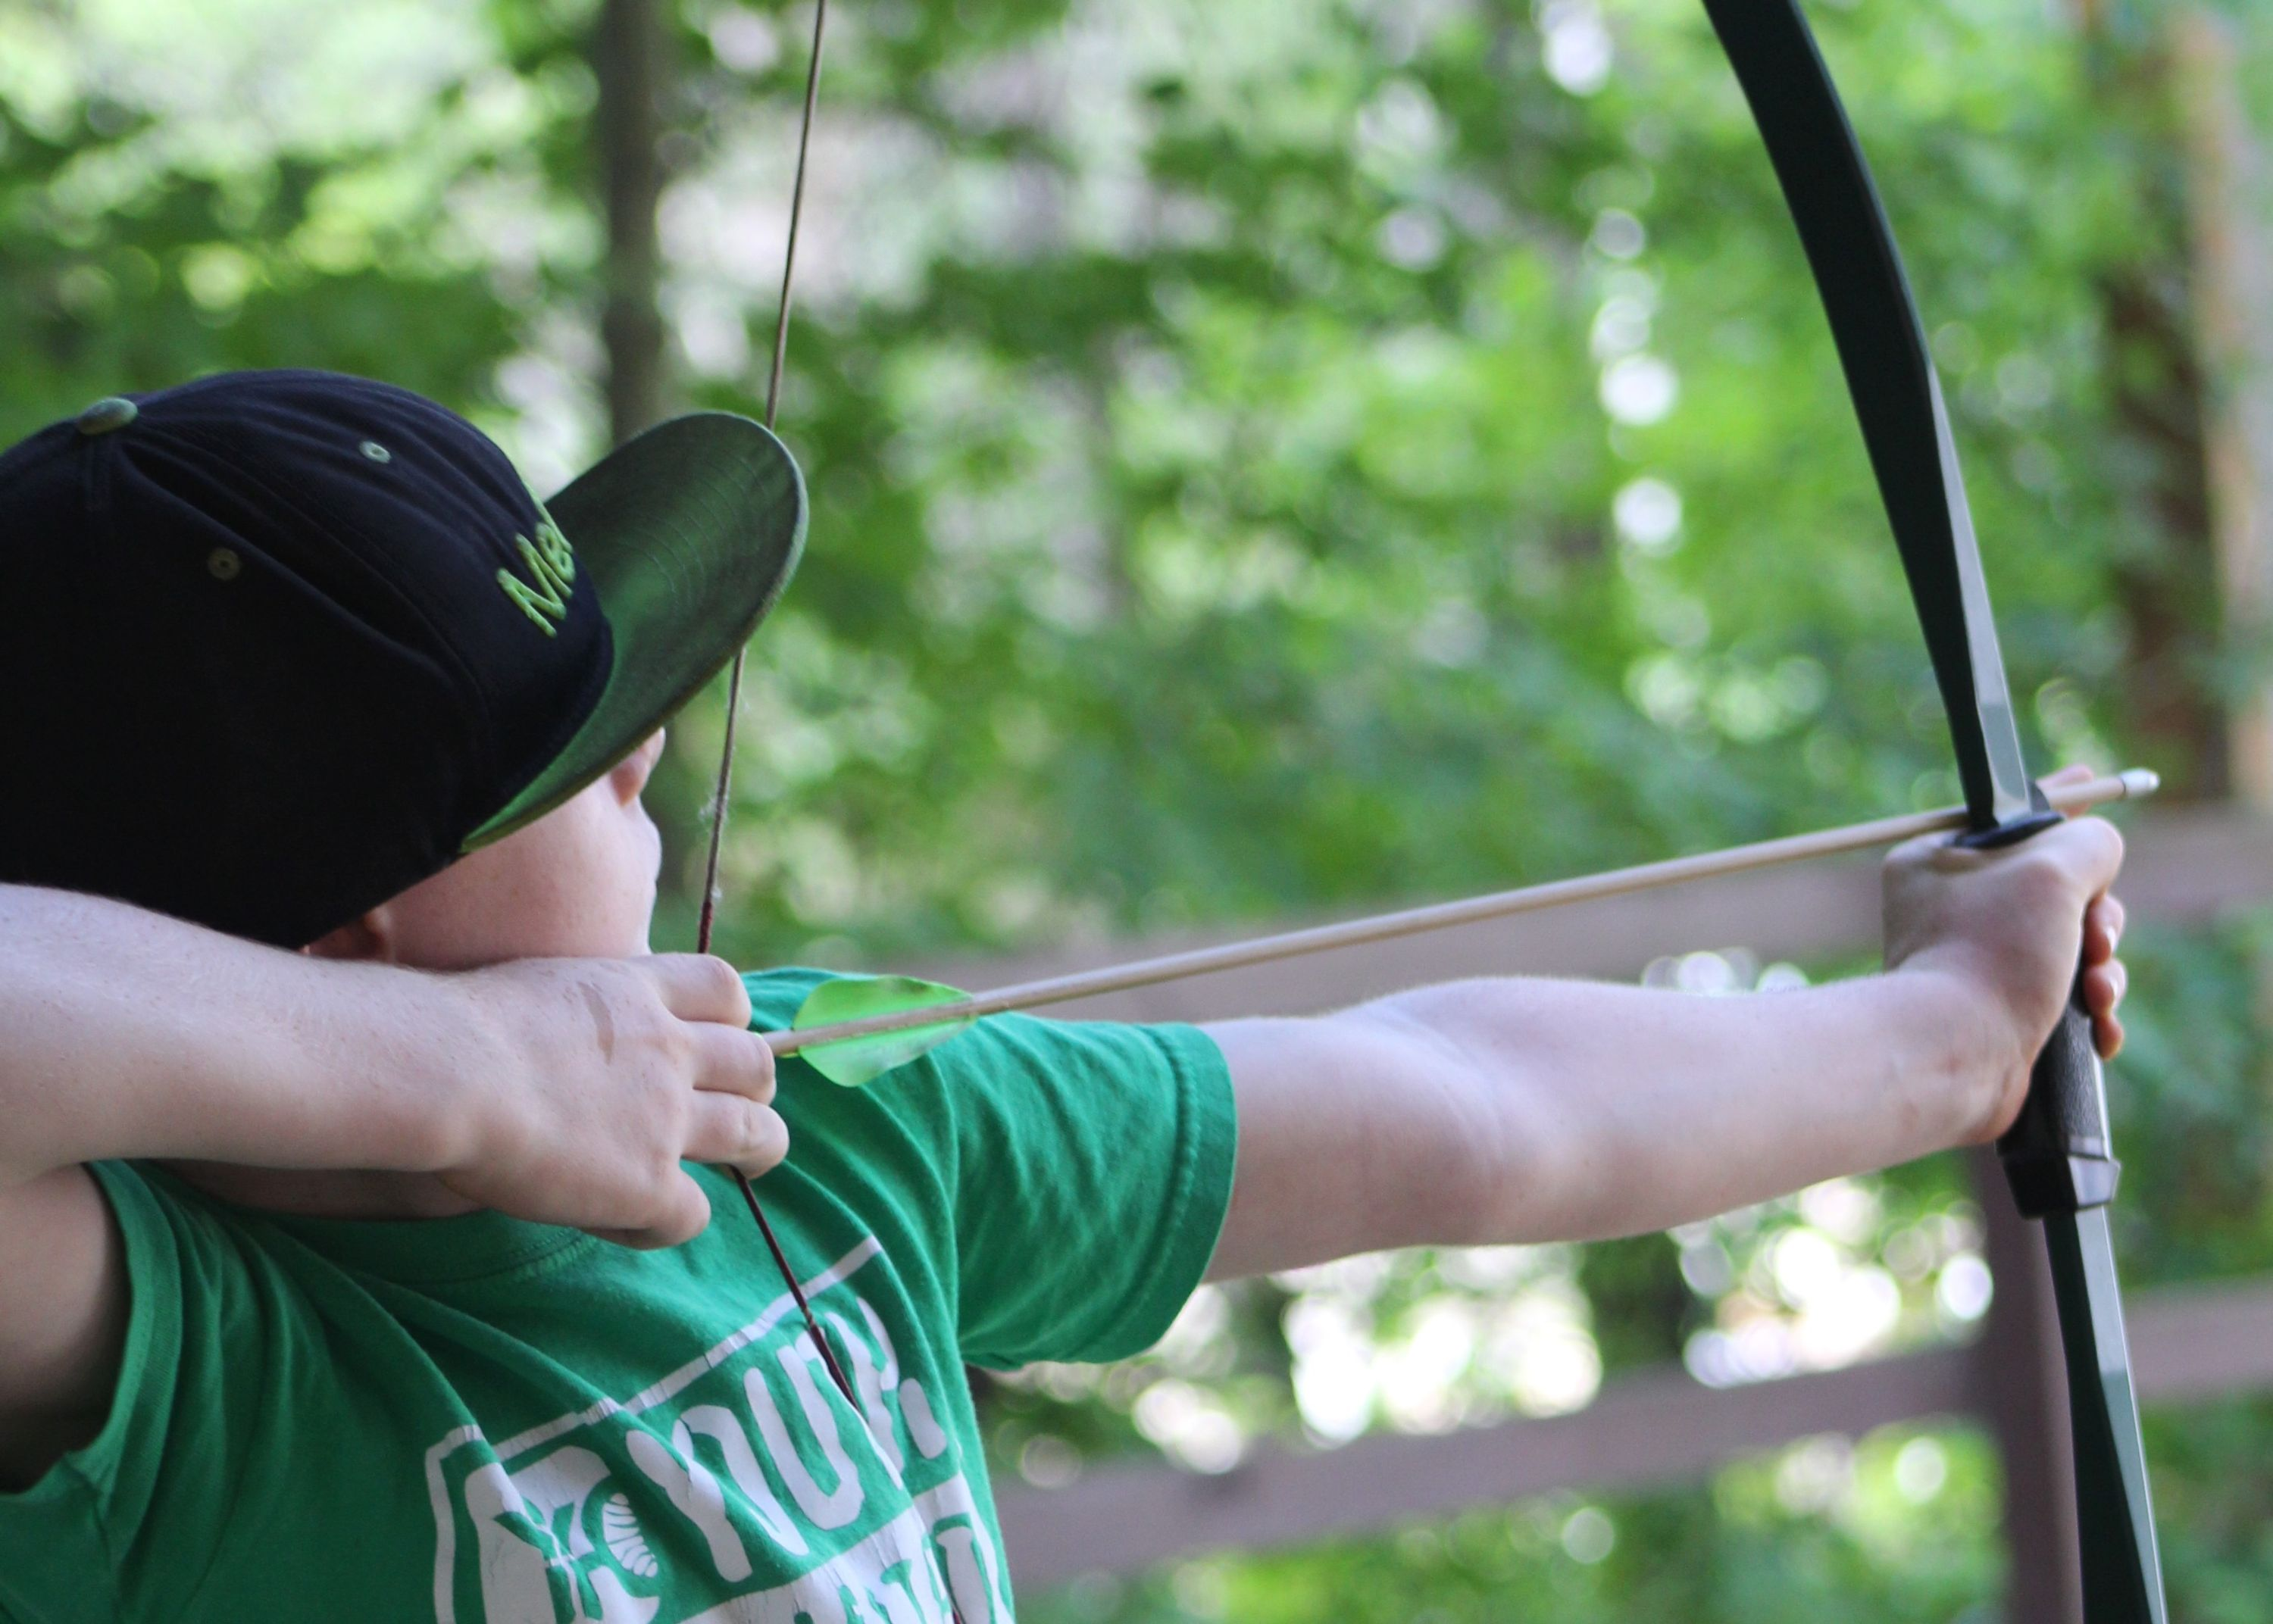 camper doing archery  at Medeba Summer Camp in Haliburton